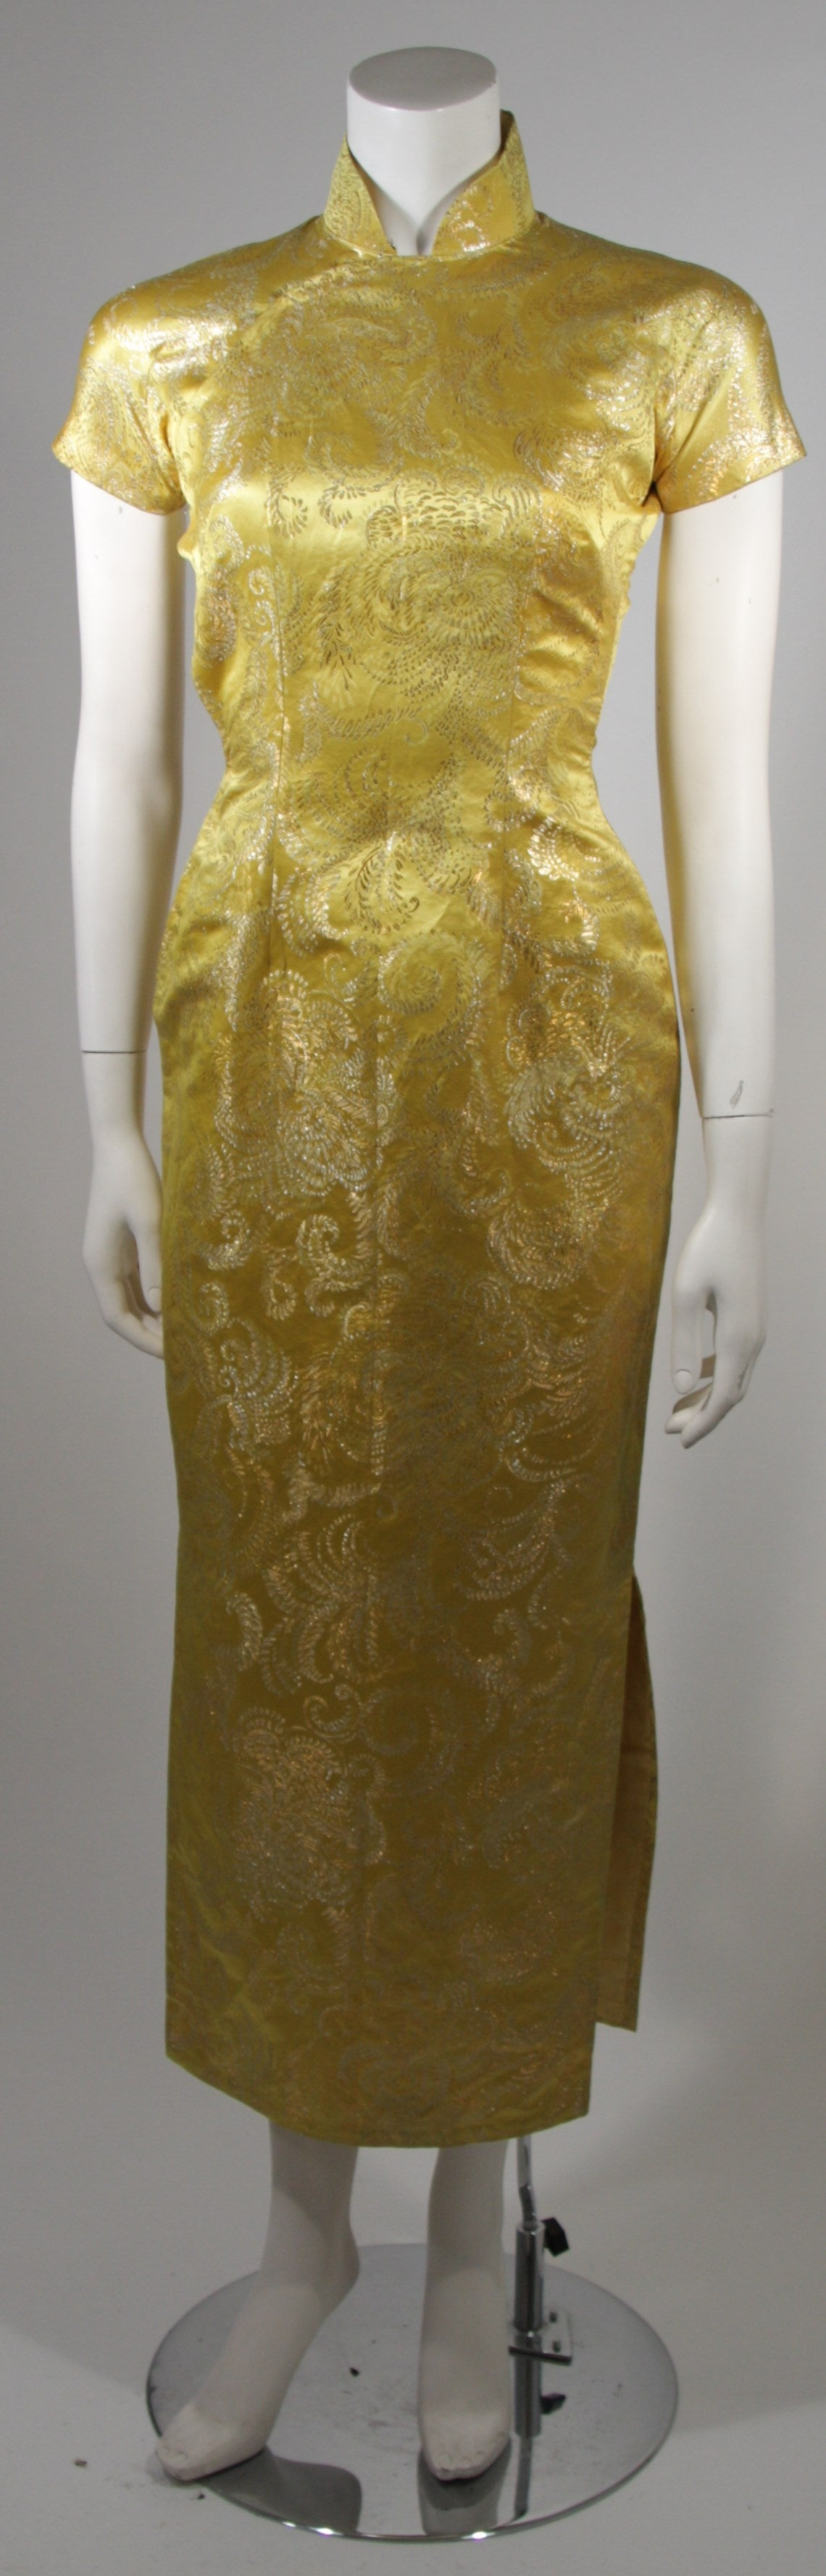 1950's Ornate Silk Brocade Golden Yellow Cheongsam Cocktail Gown  Size XS 2